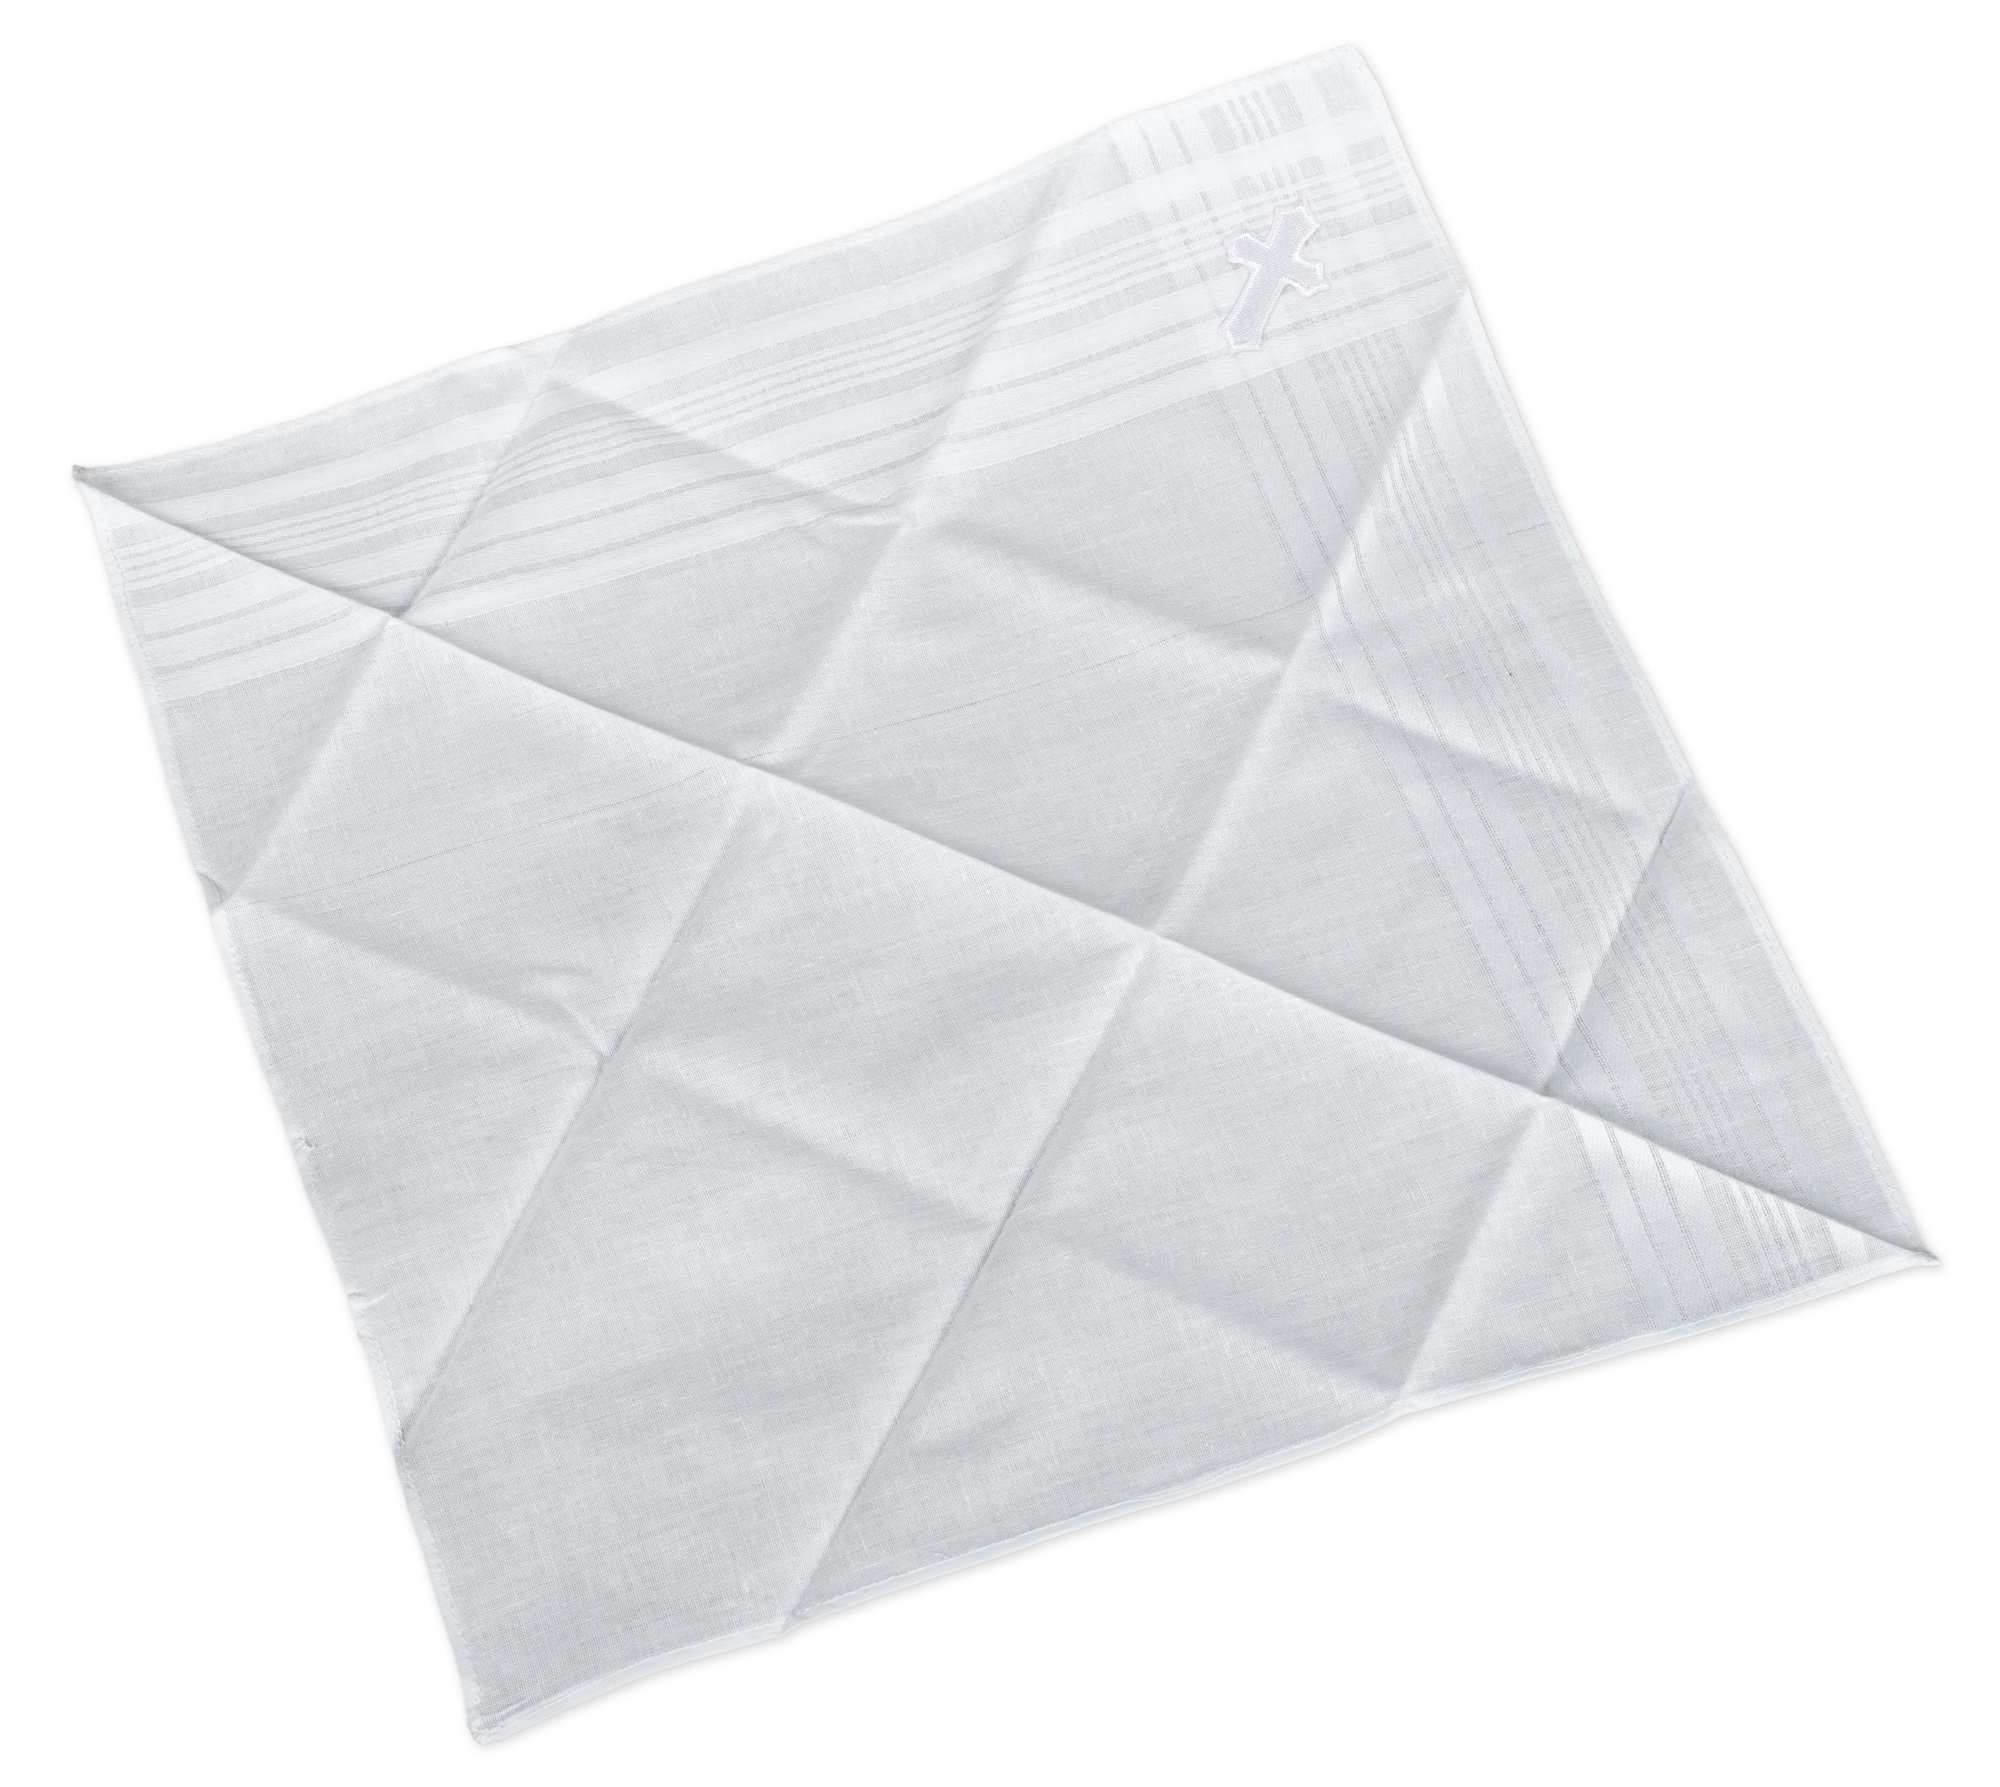 First Communion Boy's White Tie and Hanky Set with Cross - Edged Cross by Simply Charming (Image #3)